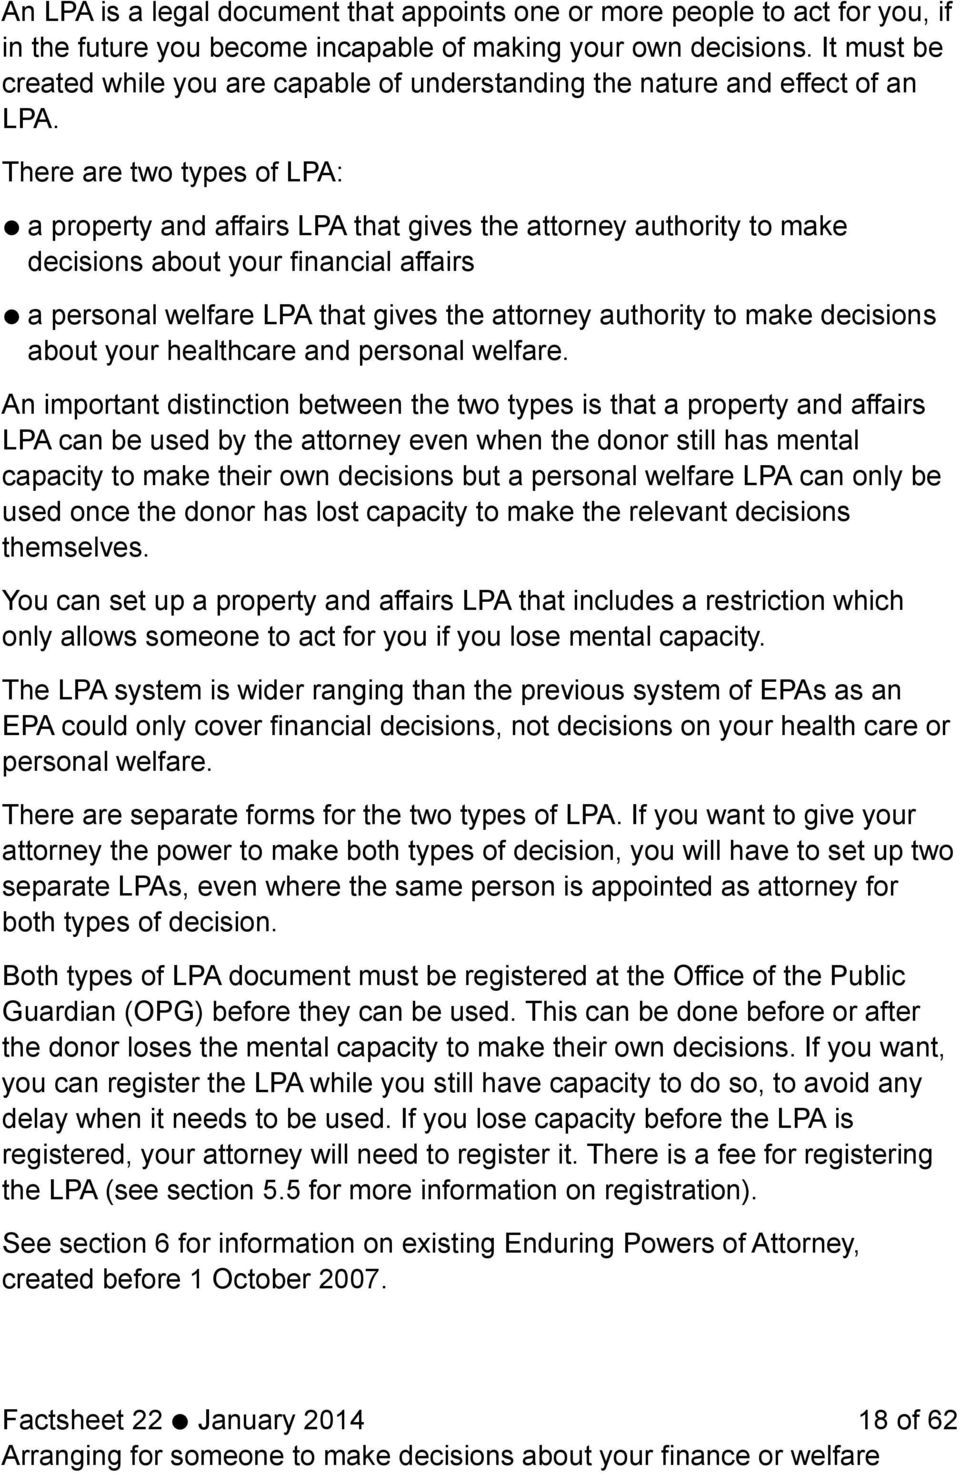 There are two types of LPA: a property and affairs LPA that gives the attorney authority to make decisions about your financial affairs a personal welfare LPA that gives the attorney authority to